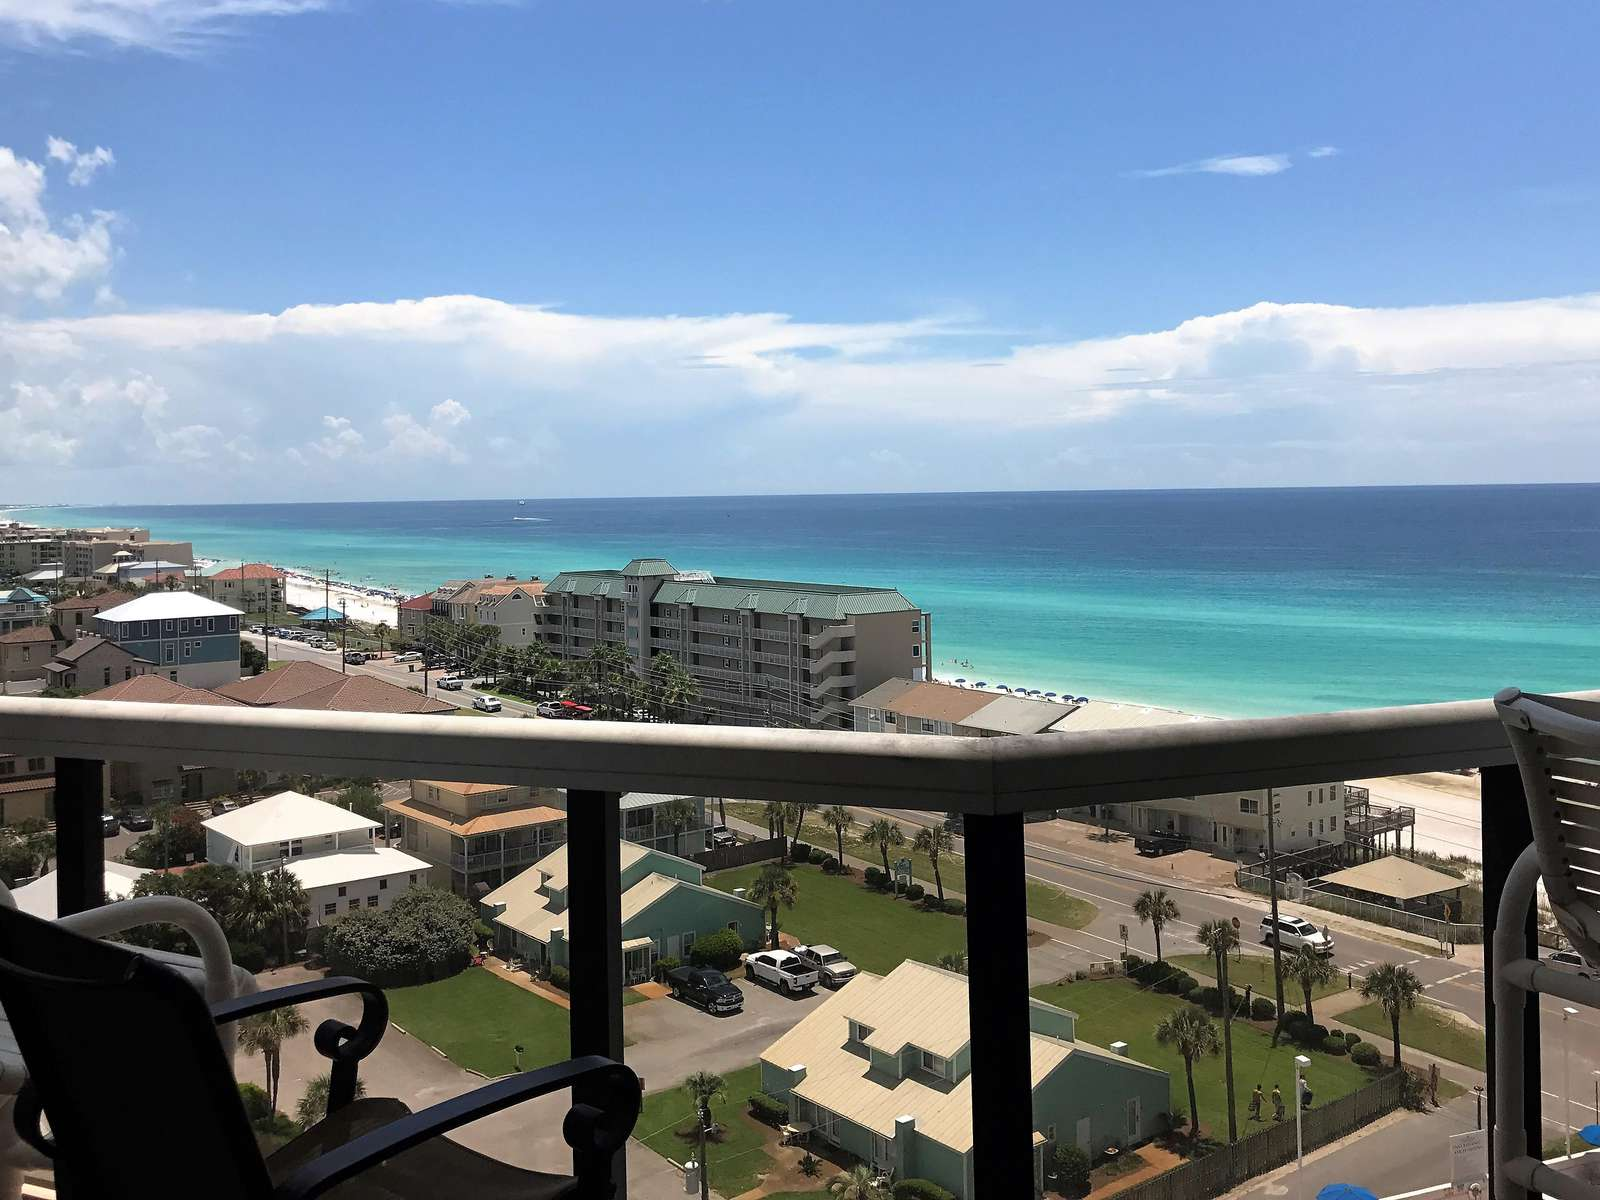 The gorgeous waters of the Gulf from our balcony!